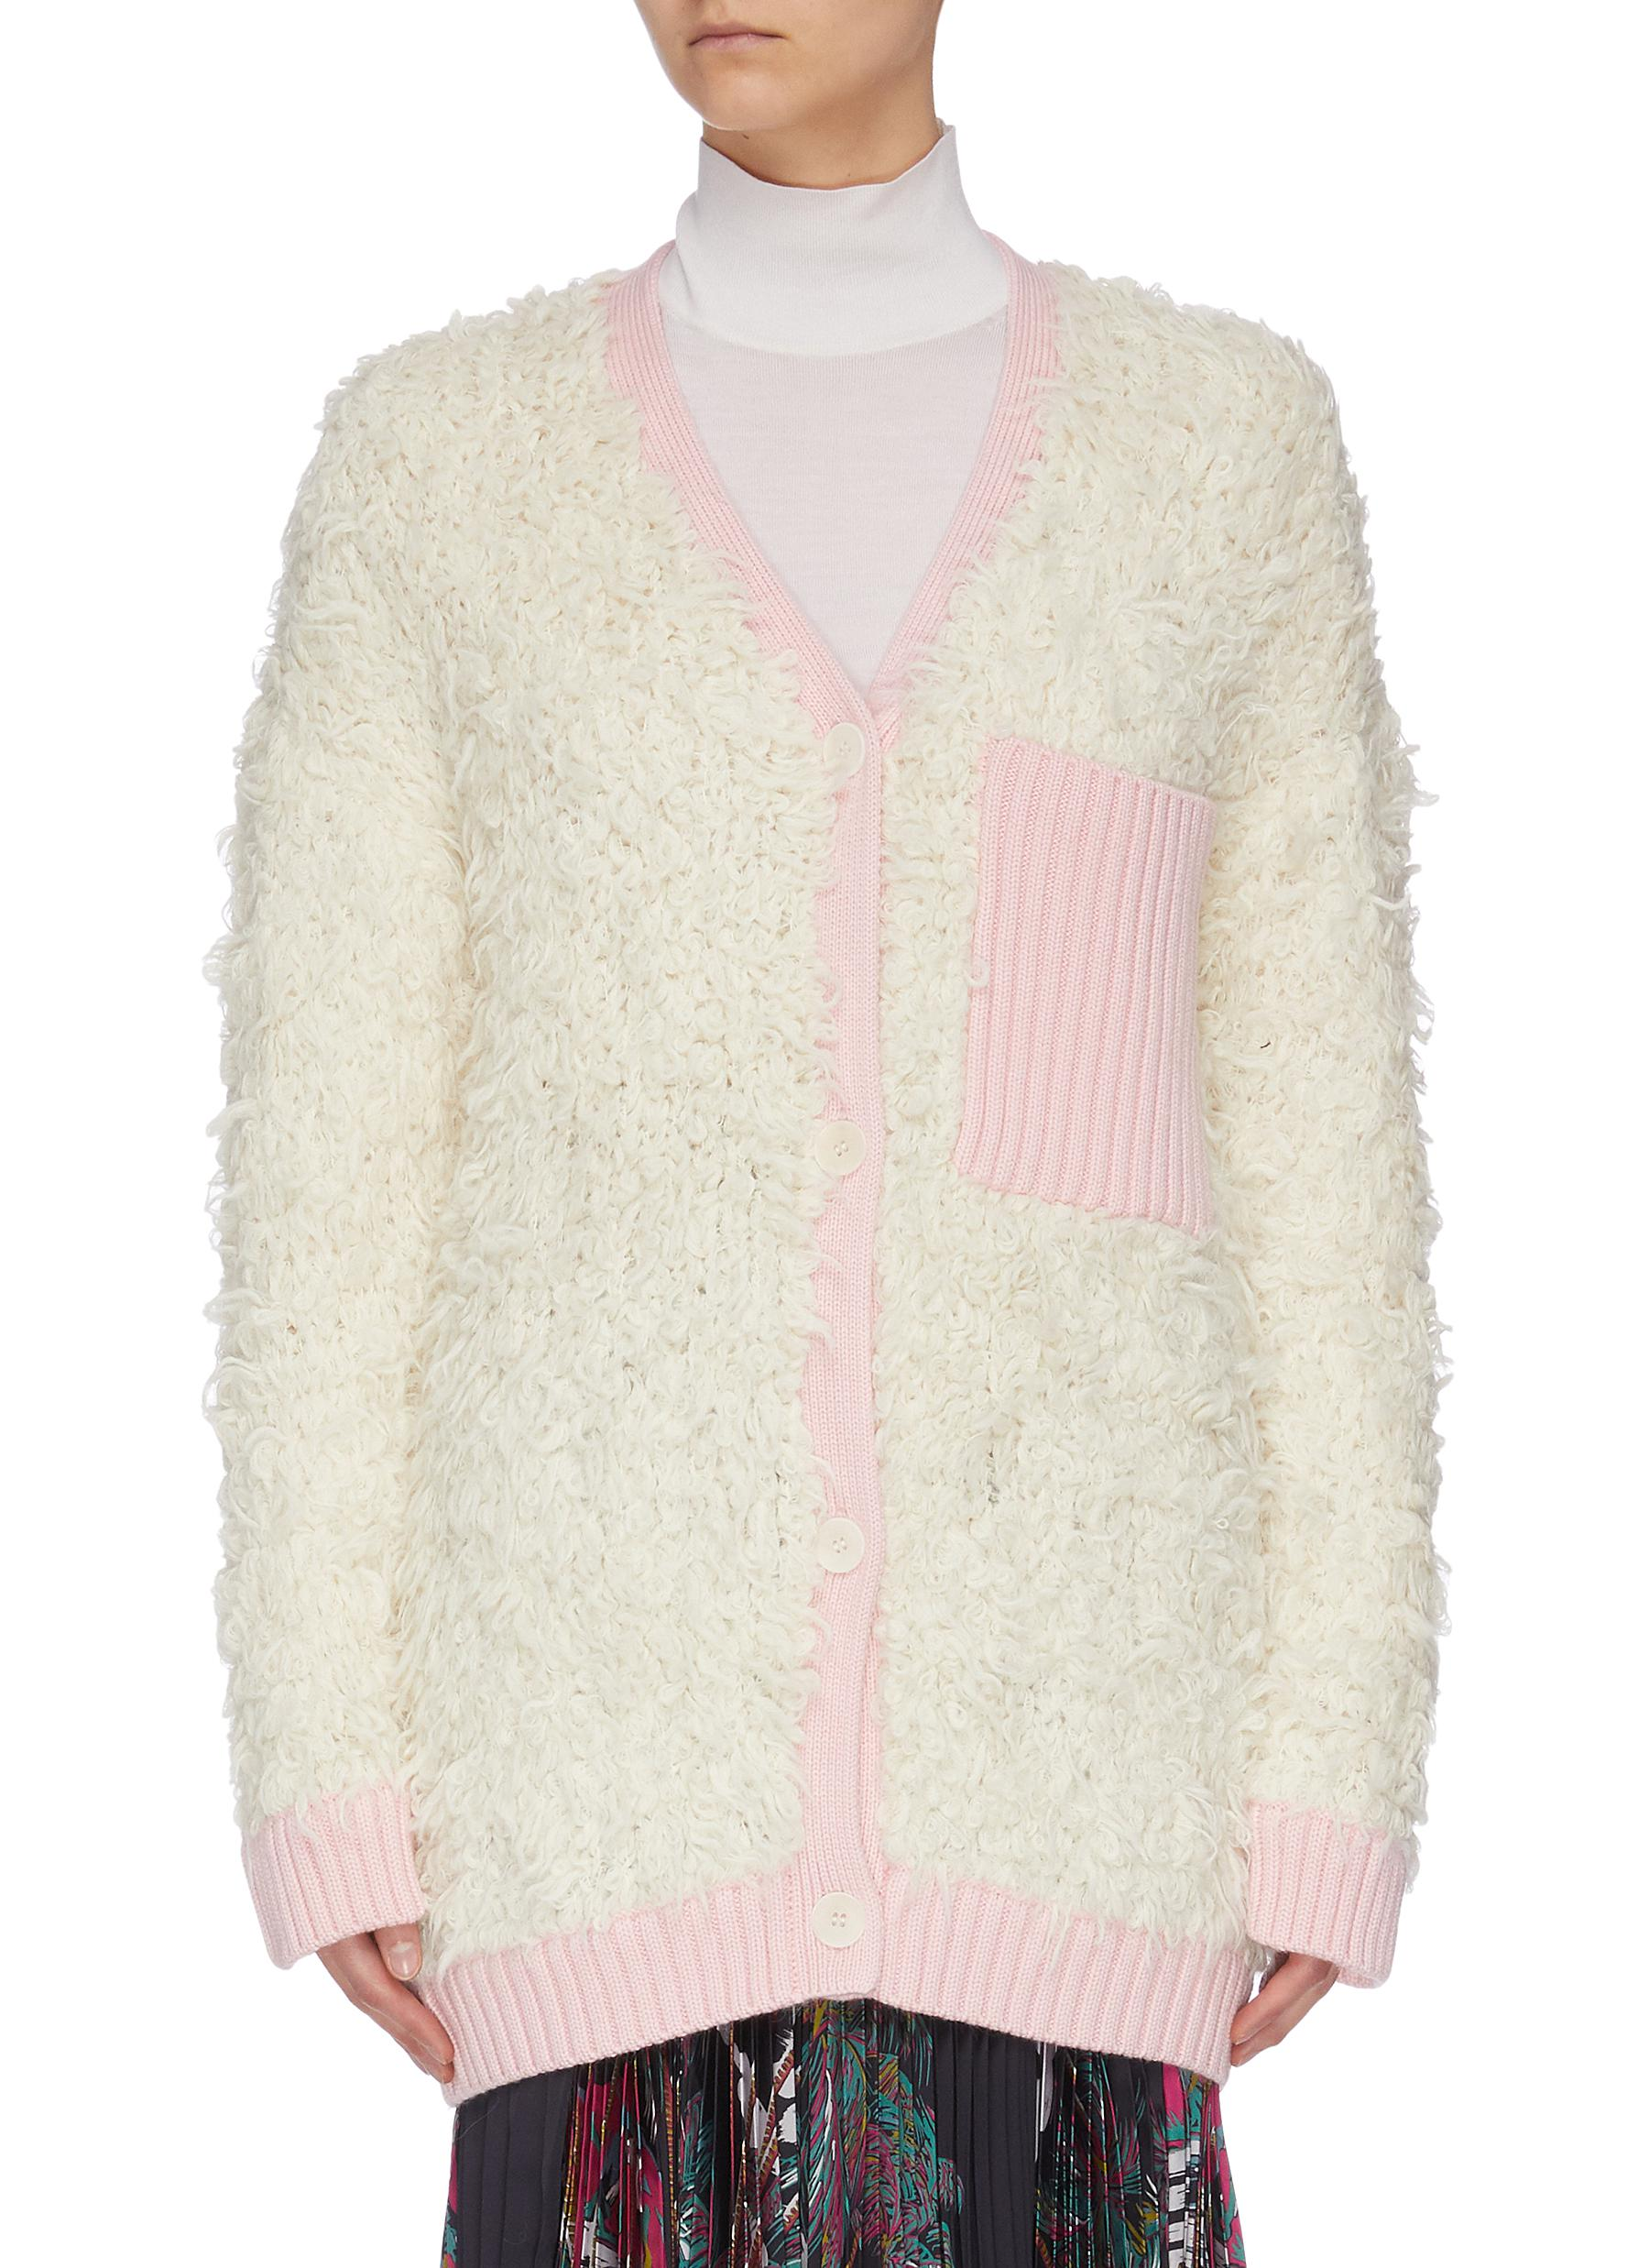 Buy Short Sentence Knitwear 'Fluffy Teddy' ribbed pocket cardigan